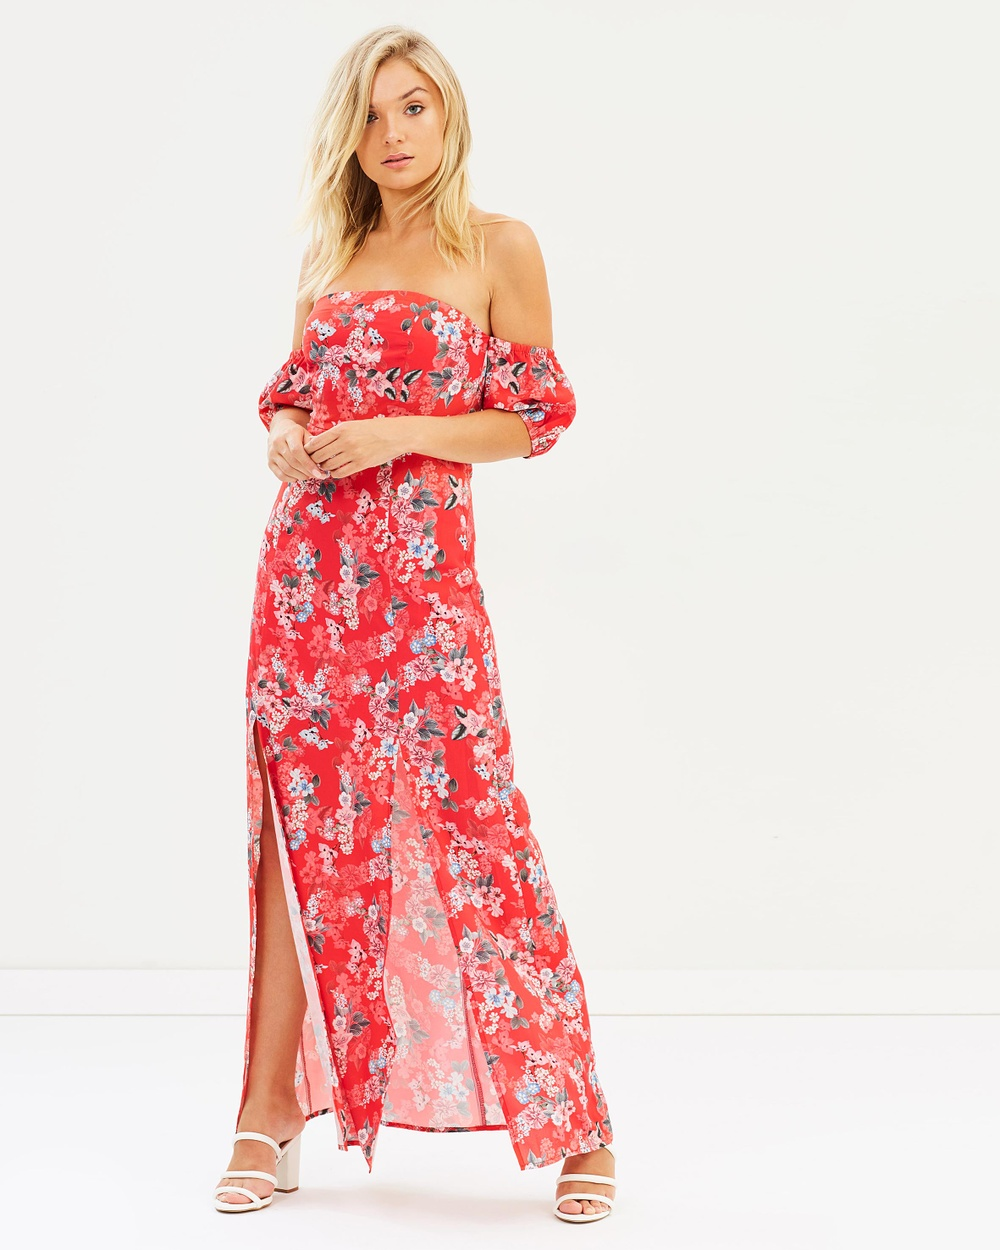 Atmos & Here ICONIC EXCLUSIVE Saba Off Shoulder Maxi Dress Printed Dresses Red Floral ICONIC EXCLUSIVE Saba Off-Shoulder Maxi Dress